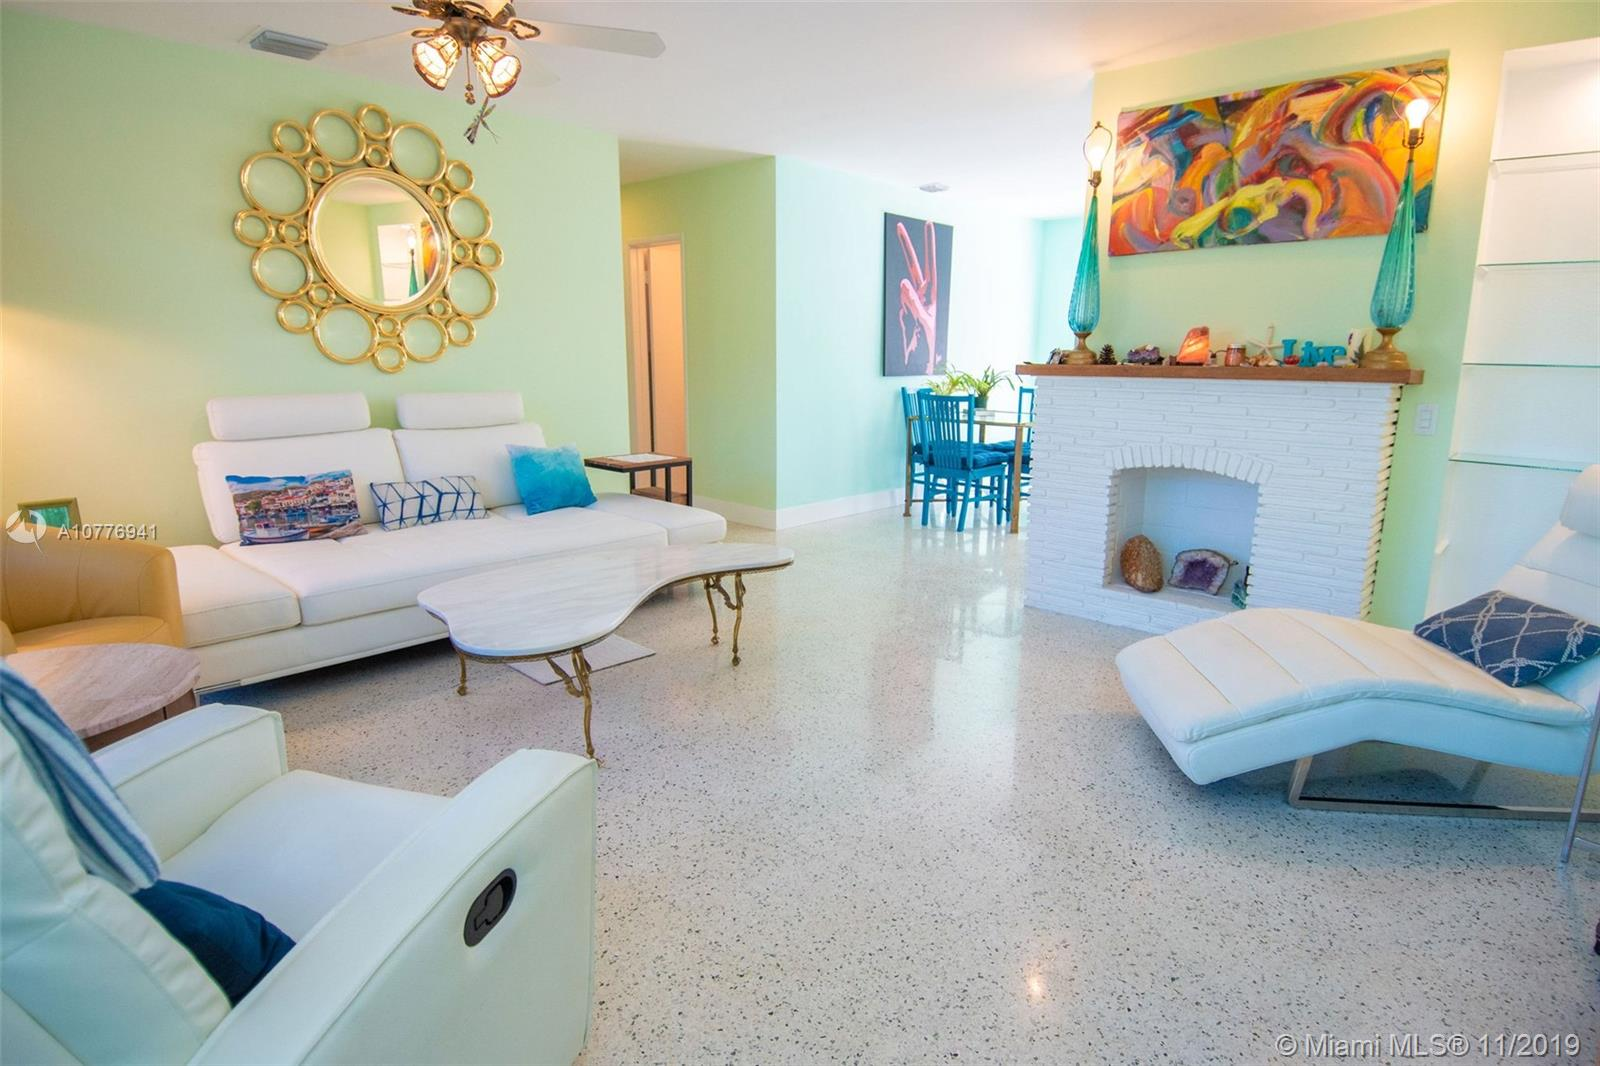 Move in ready, recently renovated home in East Wilton Manors. You are warmly welcomed into the open and inviting living space by the beautiful polished terrazzo floor and enhancing color scheme. The light kitchen has lots of meal preparation space on the natural Alexandrite counter tops. Open the French doors off of the dining area to enjoy Southeast Florida's tropical weather by swimming in the South facing large pool or relaxing in the expansive backyard encompassed by a wood privacy fence.  Updates include a new electric panel, dedicated 50 amp power for RV, new plumbing pipes inside and under the home out to the street, a/c and hot water heater 2 yrs young. Protected by accordion shutters and impact front door. Come fall in love with this home!